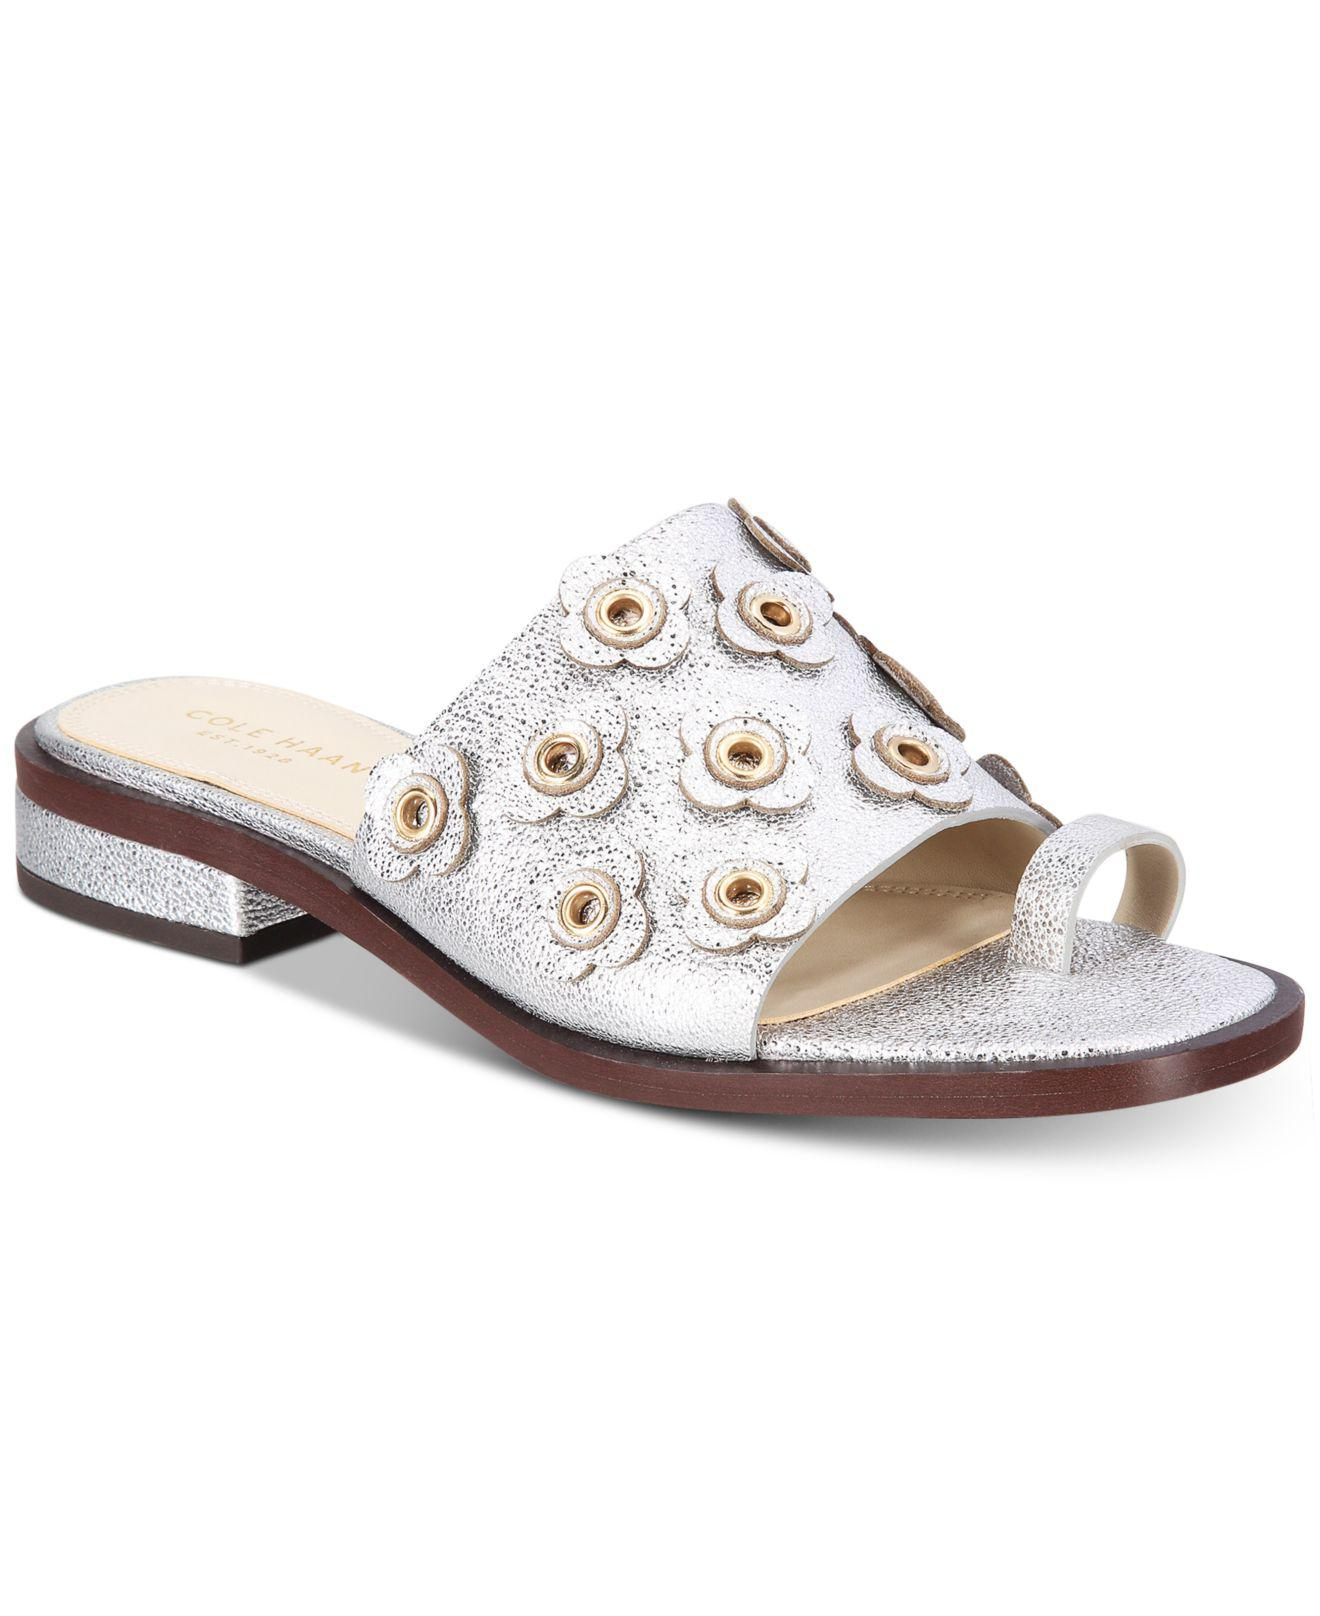 91d0a074d91 Cole Haan Carly Floral Sandals in Metallic - Lyst